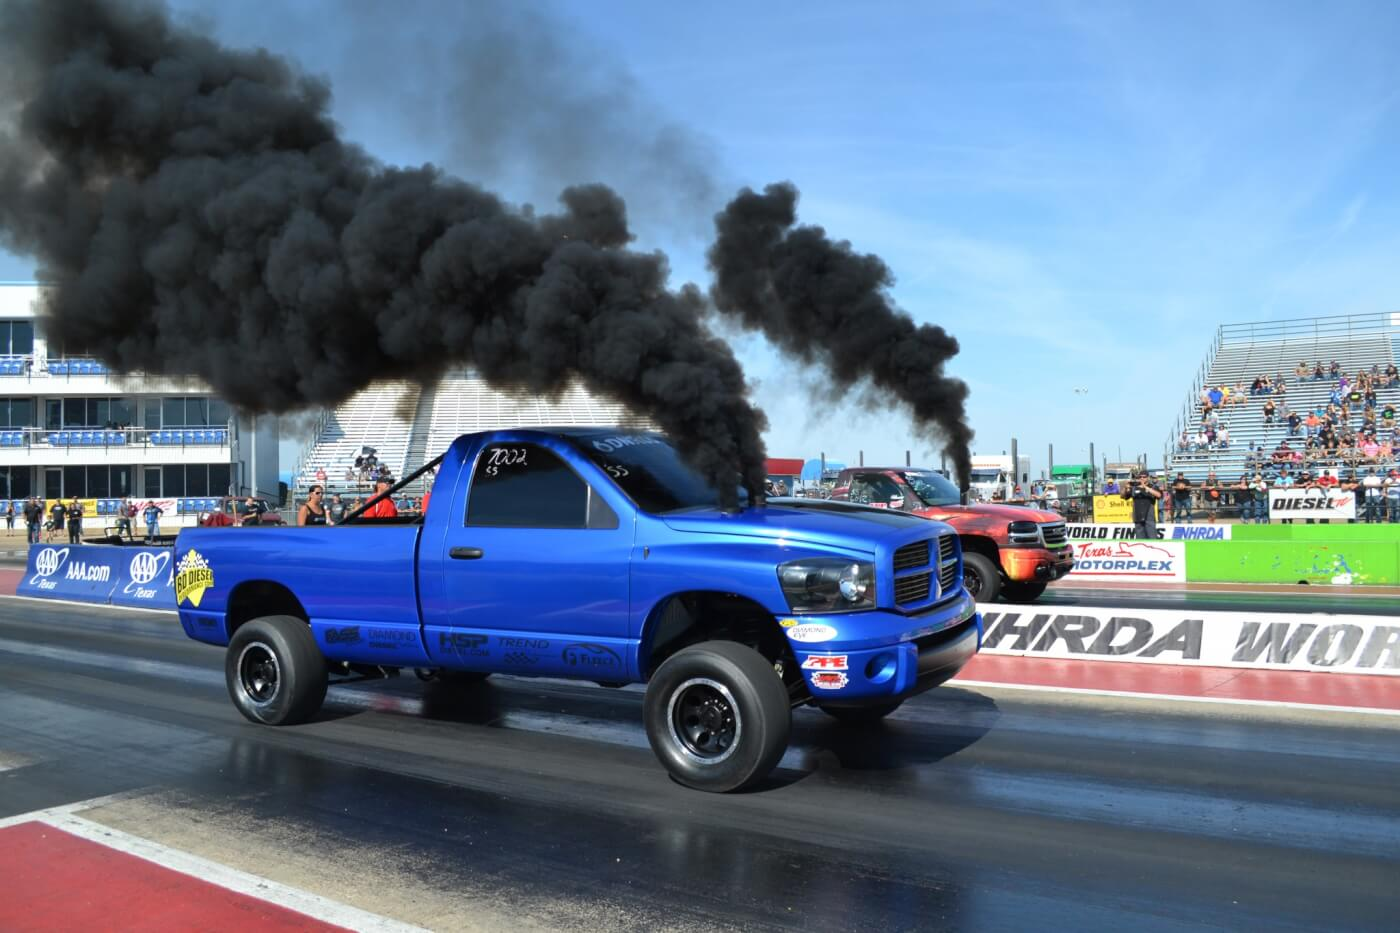 Derek Rose had a stand out performance in Super Street, resetting the NHRDA World Record with a 9.25 second elapsed time in his 1,500 rear-wheel horsepower Ram.